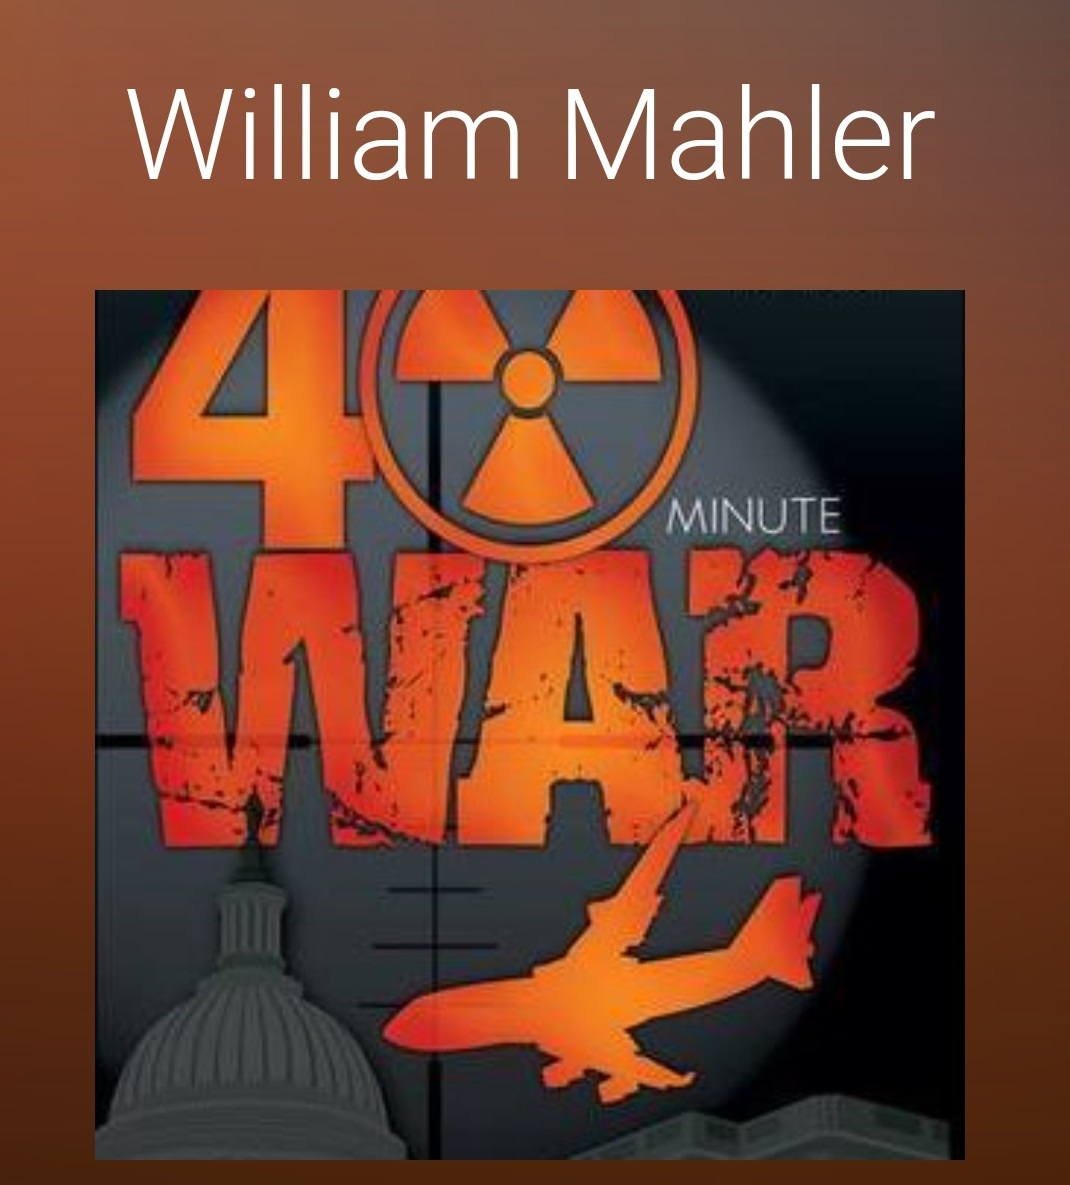 Blending Political Discourse, Conspiracy Theories, and the Aftermath of a Tragic Day in American History: Classified Evidence to Become Available Thanks to Multi-Genre Singer/Songwriter William Mahler